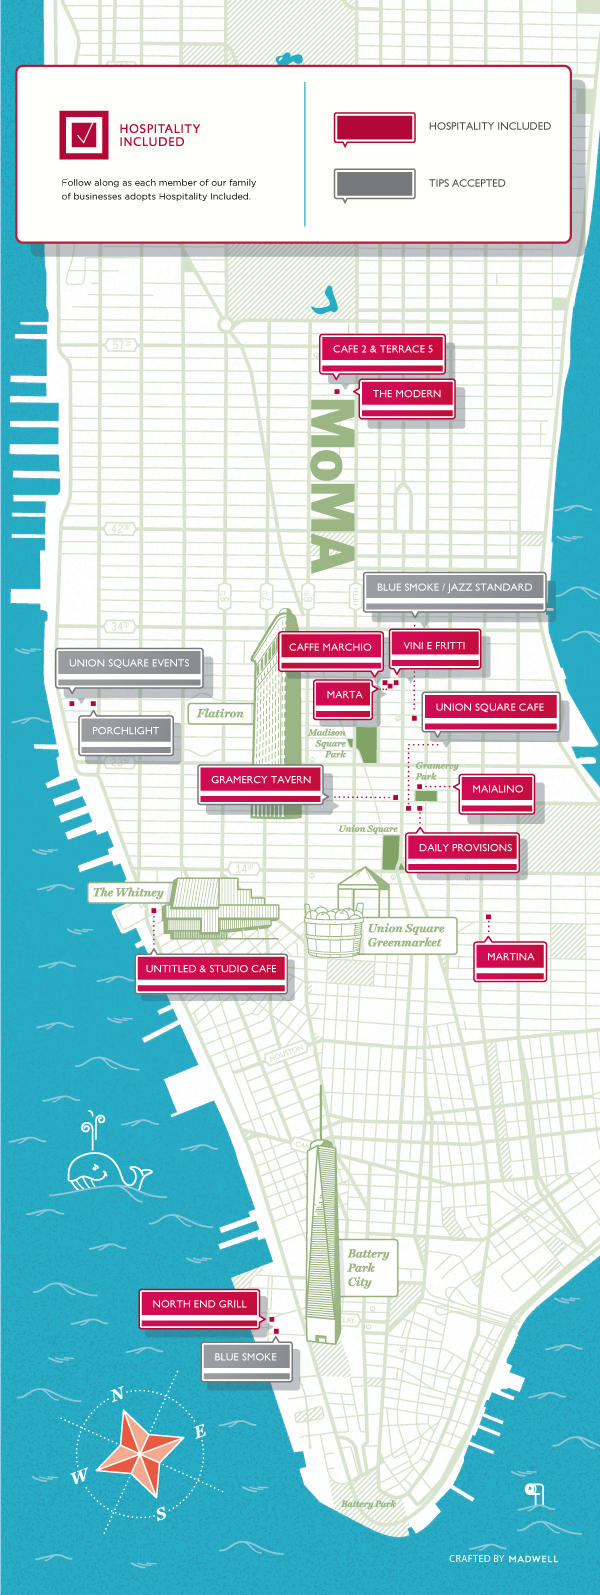 Map of the restaurants that have adopted Hospitality Included: currently Cafe 2 at MoMA, Caffe Marchio, Daily Provisions, Gramercy Tavern, Maialino, Marta, Martina, North End Grill, The Modern, Union Square Cafe, Untitled, and Vini e Fritti.